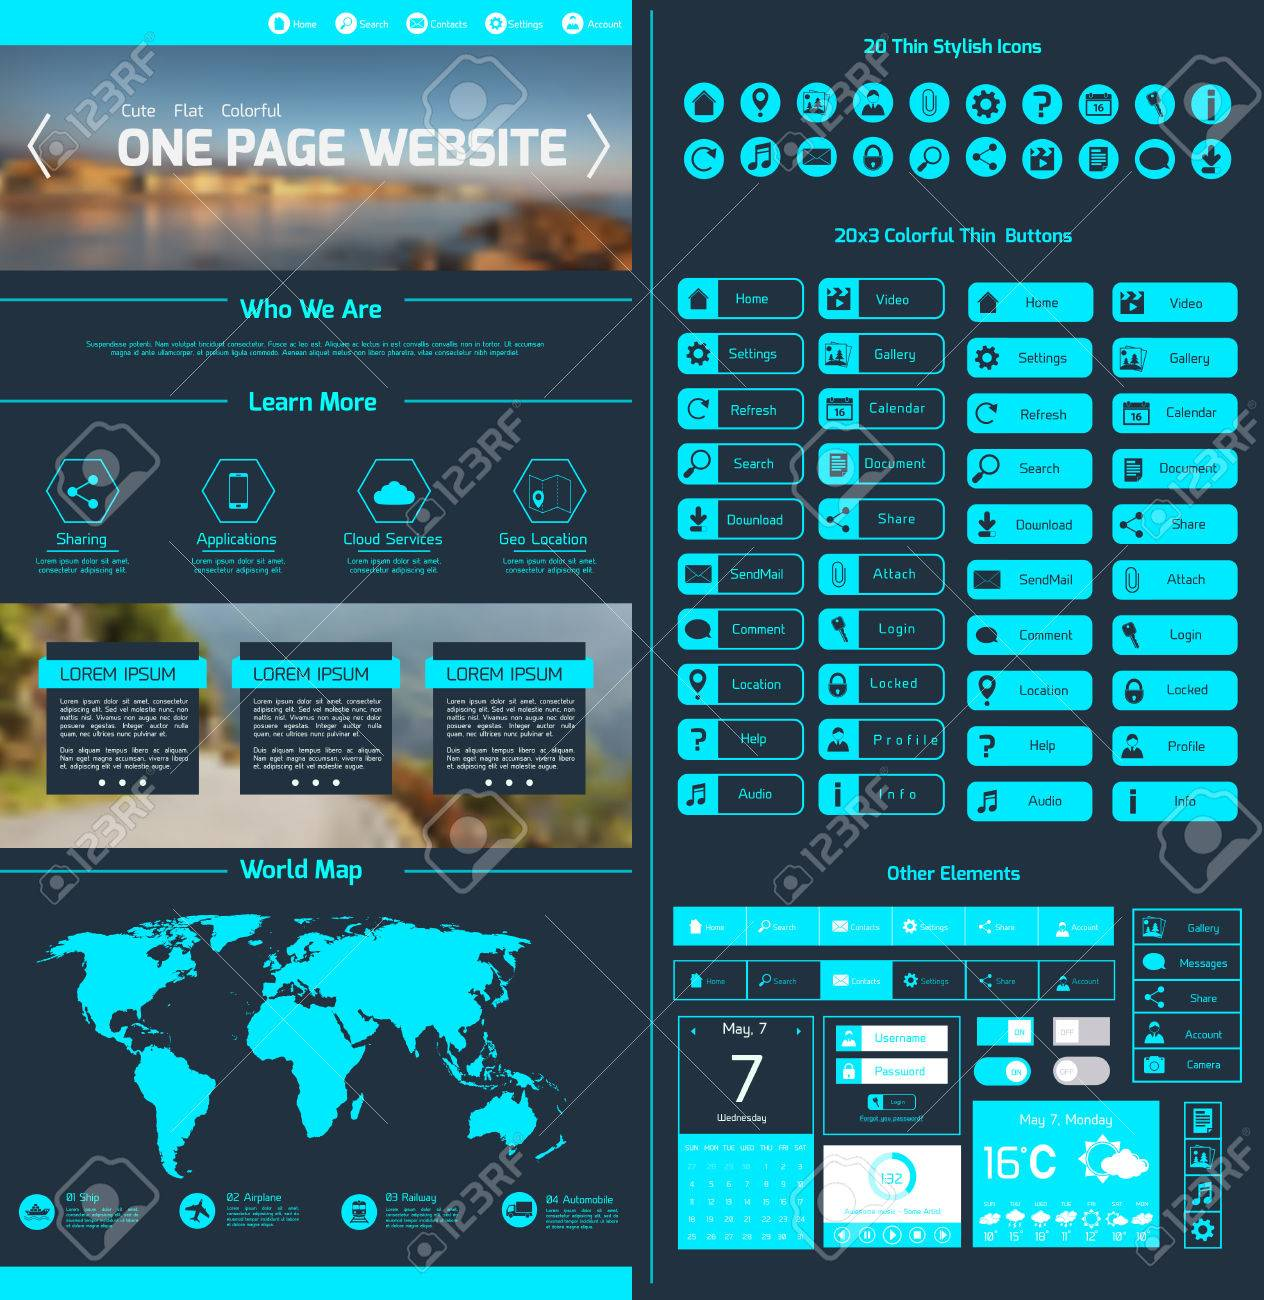 One page website design template with world map menu icons and one page website design template with world map menu icons and navigation layout elements vector illustration gumiabroncs Choice Image